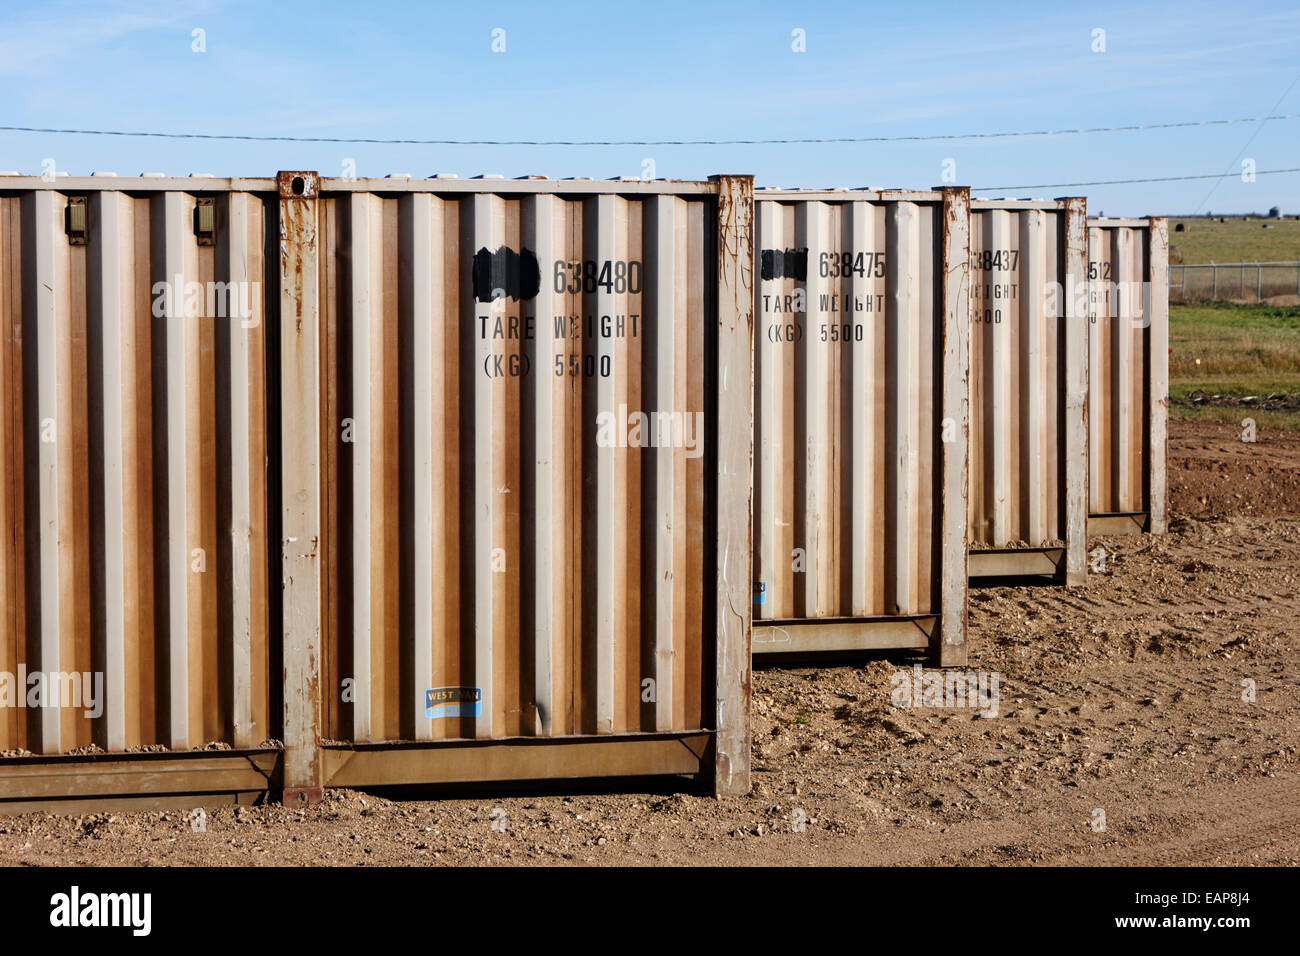 old metal shipping containers used as storage Saskatchewan Canada - Stock Image